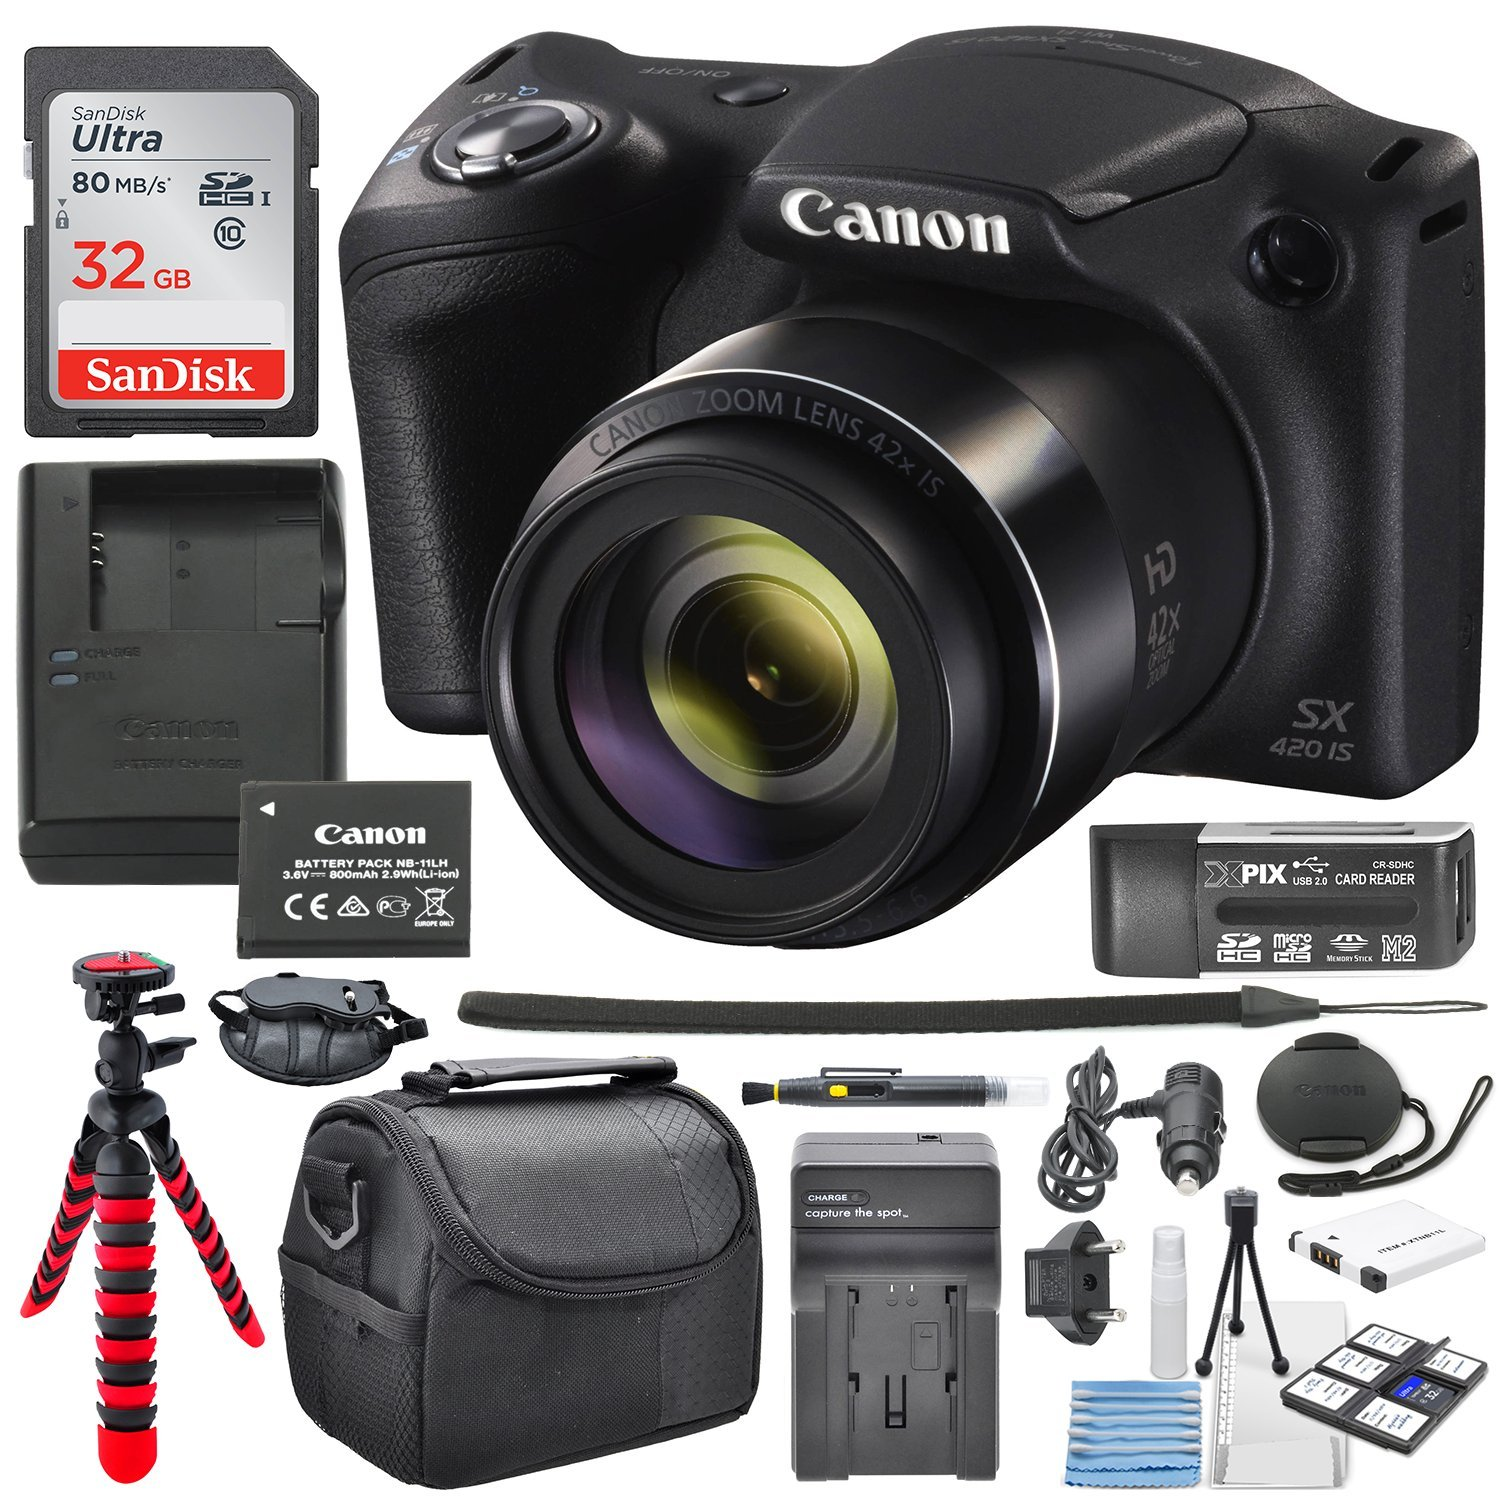 Canon PowerShot SX420 IS (Black) with 42x Optical Zoom and Built-In Wi-Fi Digital Camera & 32GB SDHC + Flexible tripod +AC/DC Turbo travel charger + Extra Battery Along with a Deluxe Bundle